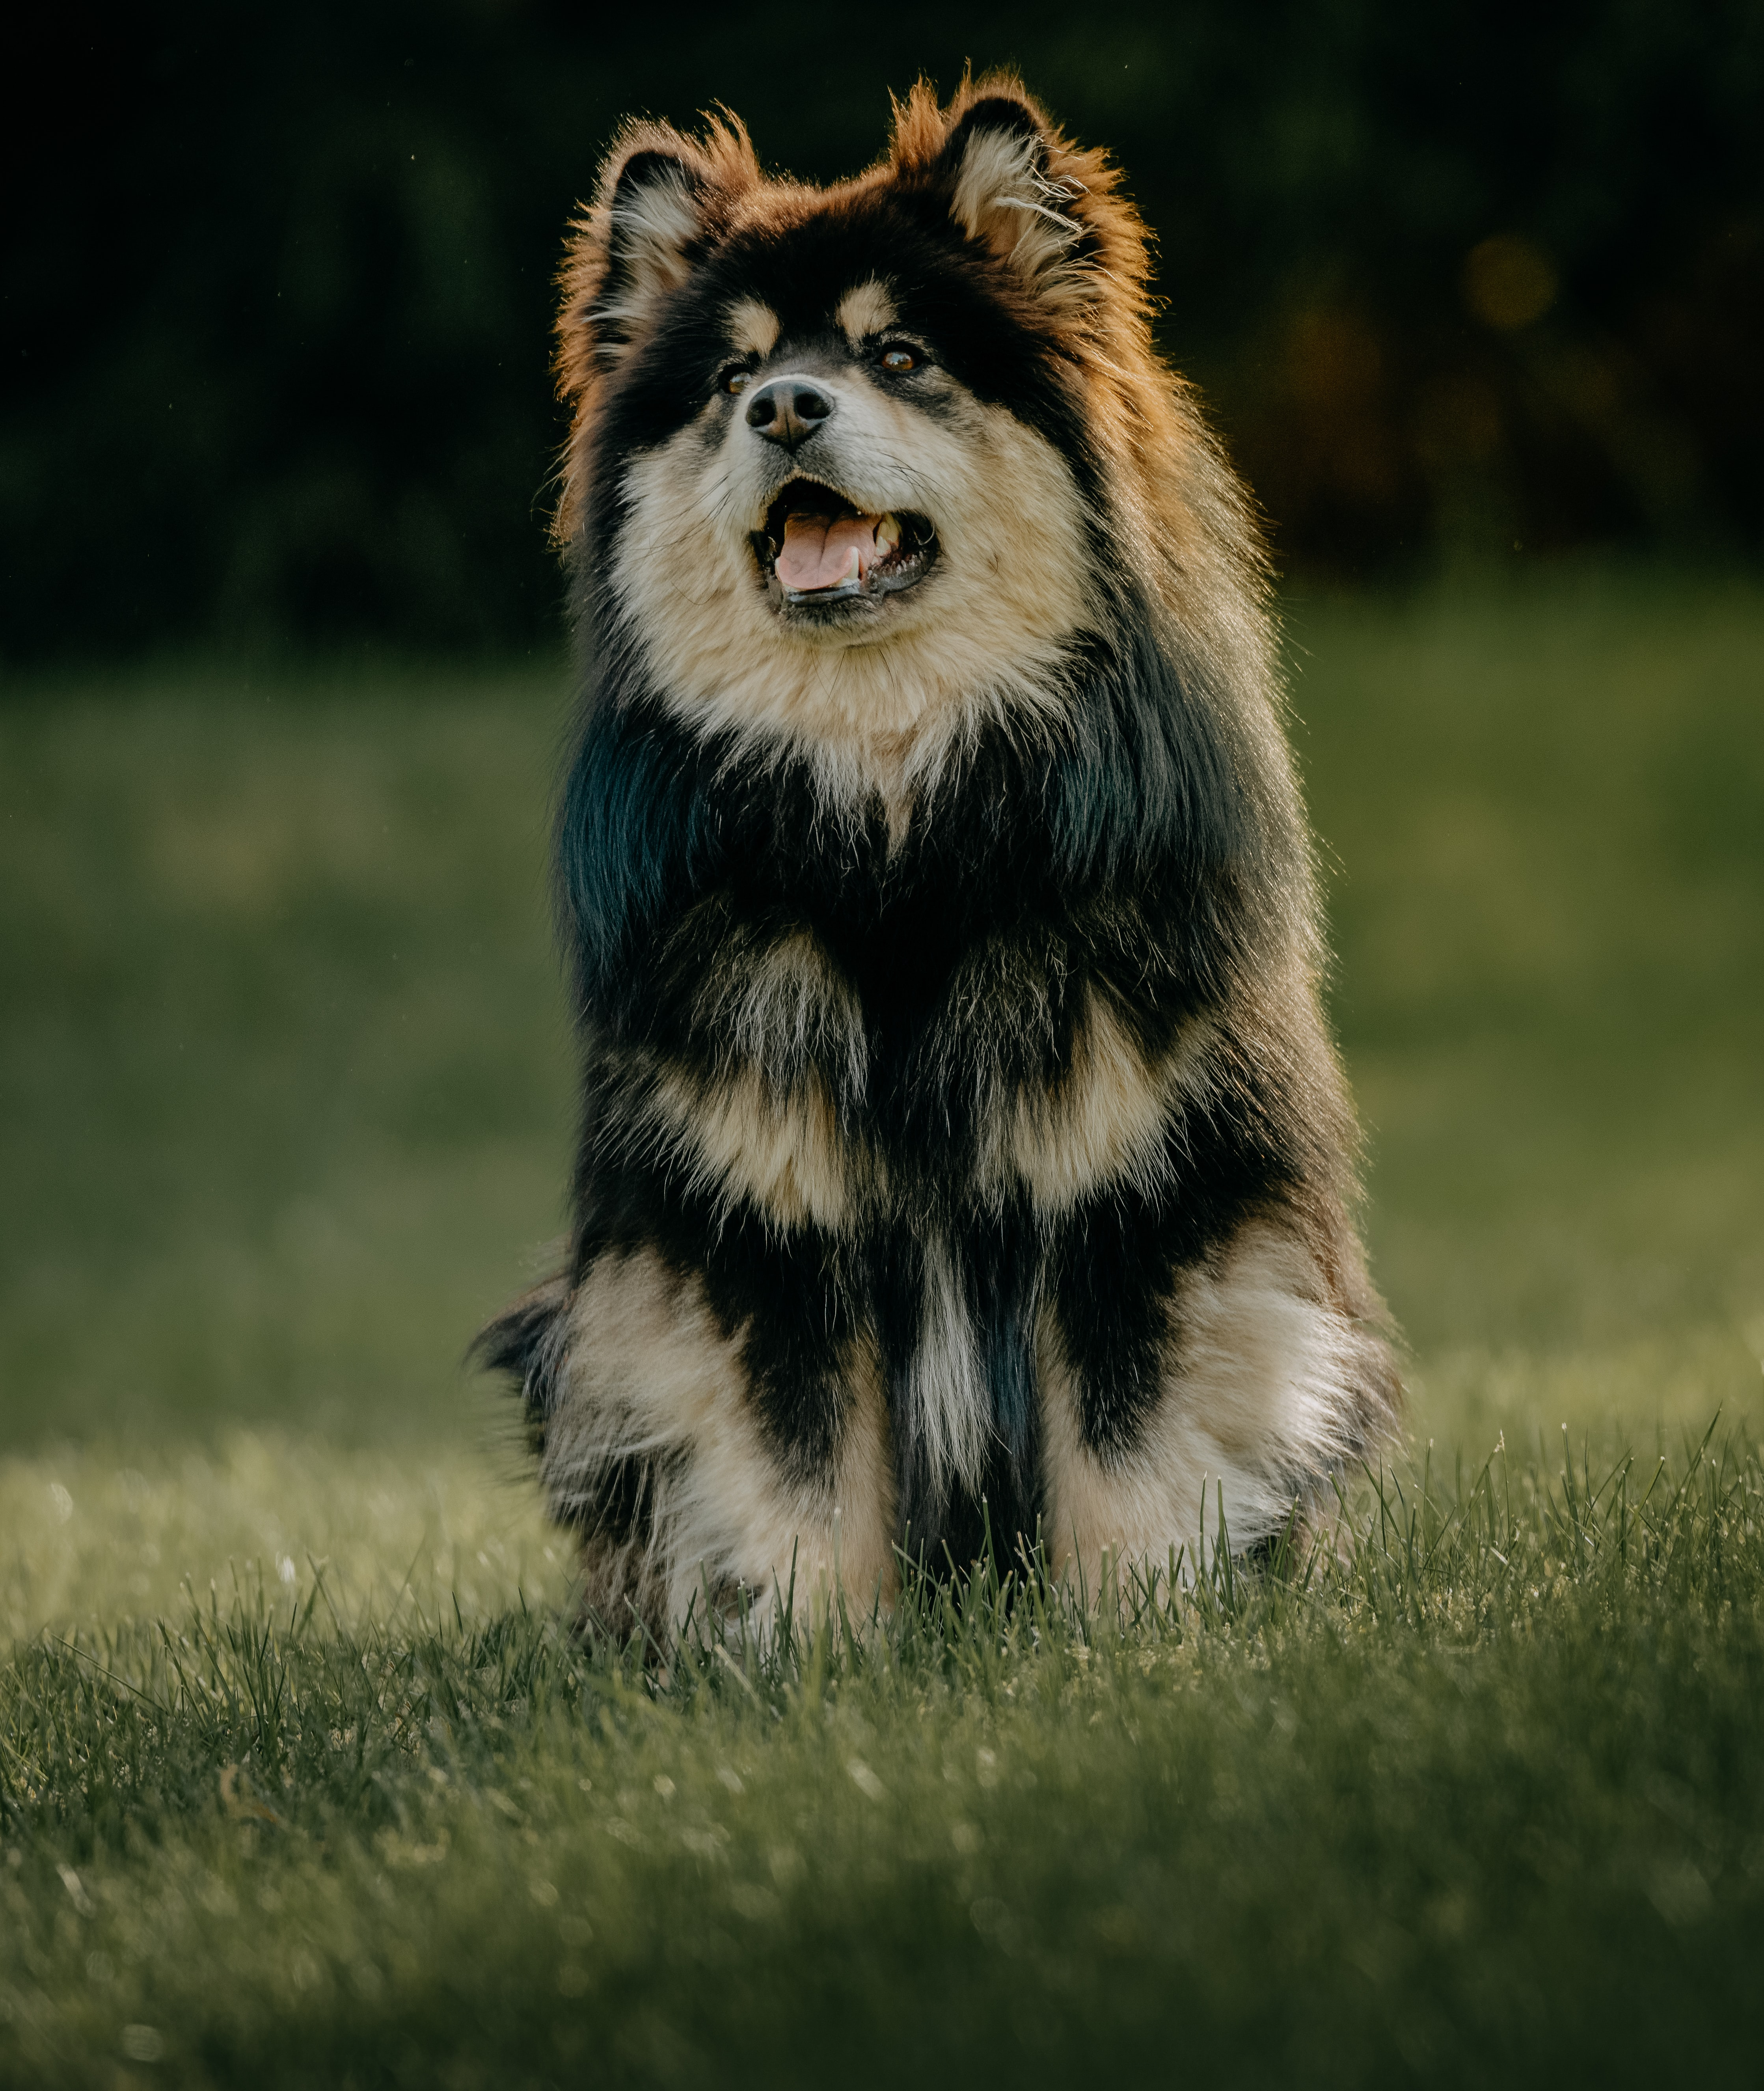 149240 download wallpaper Animals, Finnish Lapphund, Dog, Protruding Tongue, Tongue Stuck Out, Funny screensavers and pictures for free